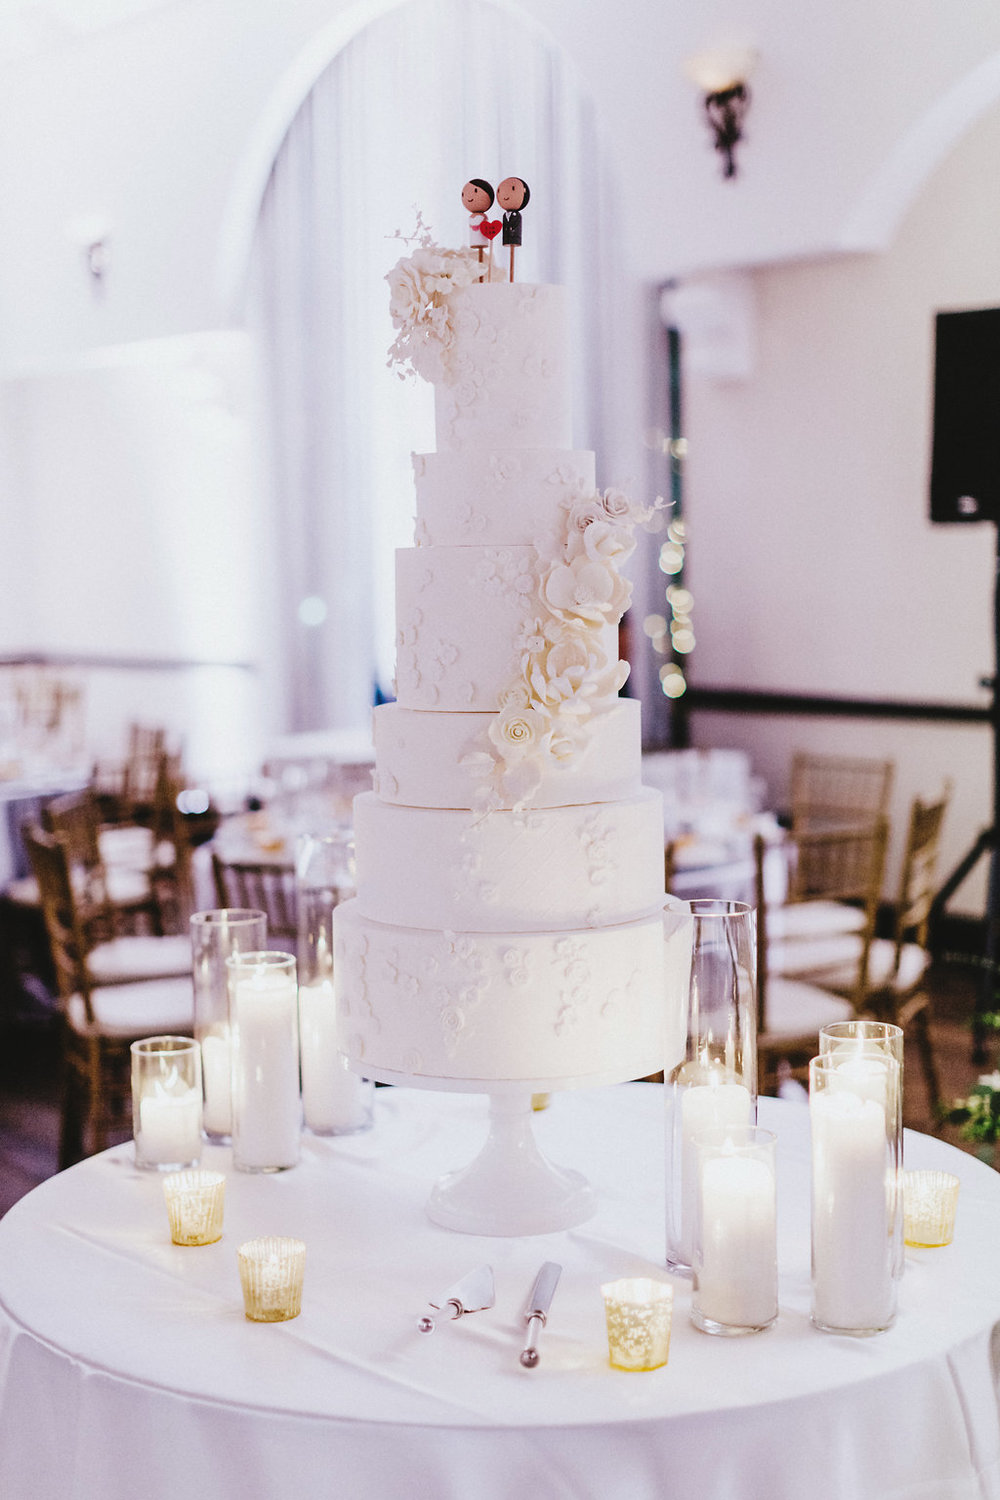 Lattice and floral mold wedding cake